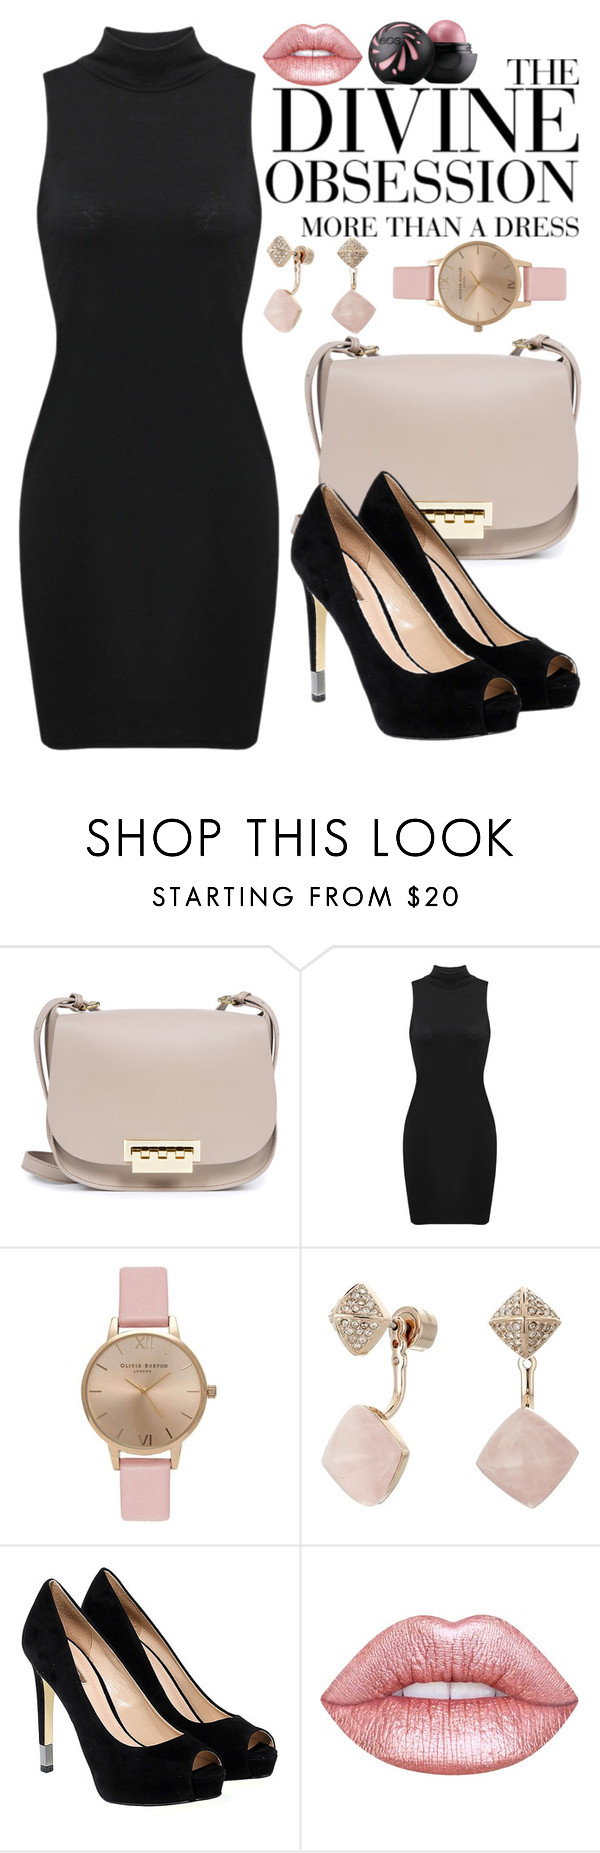 """""""Untitled #224"""" by anna-nedelcheva ❤ liked on Polyvore featuring ZAC Zac Posen, Vera Wang, Topshop, Michael Kors, GUESS and Lime Crime"""